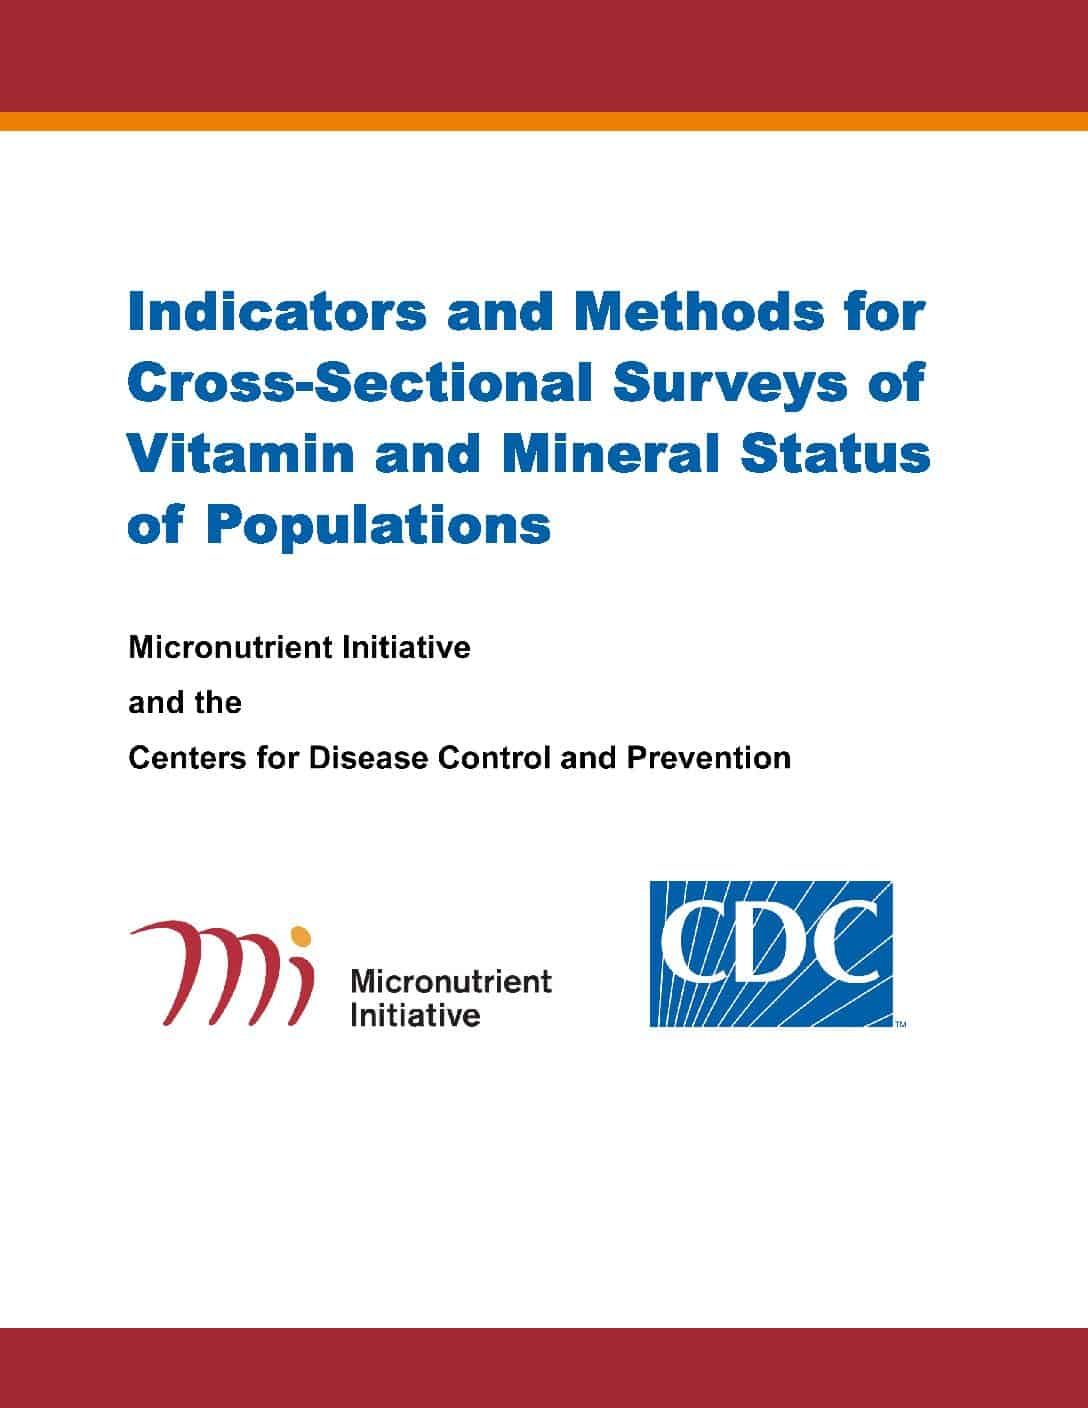 Indicators and Methods for Cross-Sectional Surveys of Vitamin and Mineral Status of Populations thumbnail